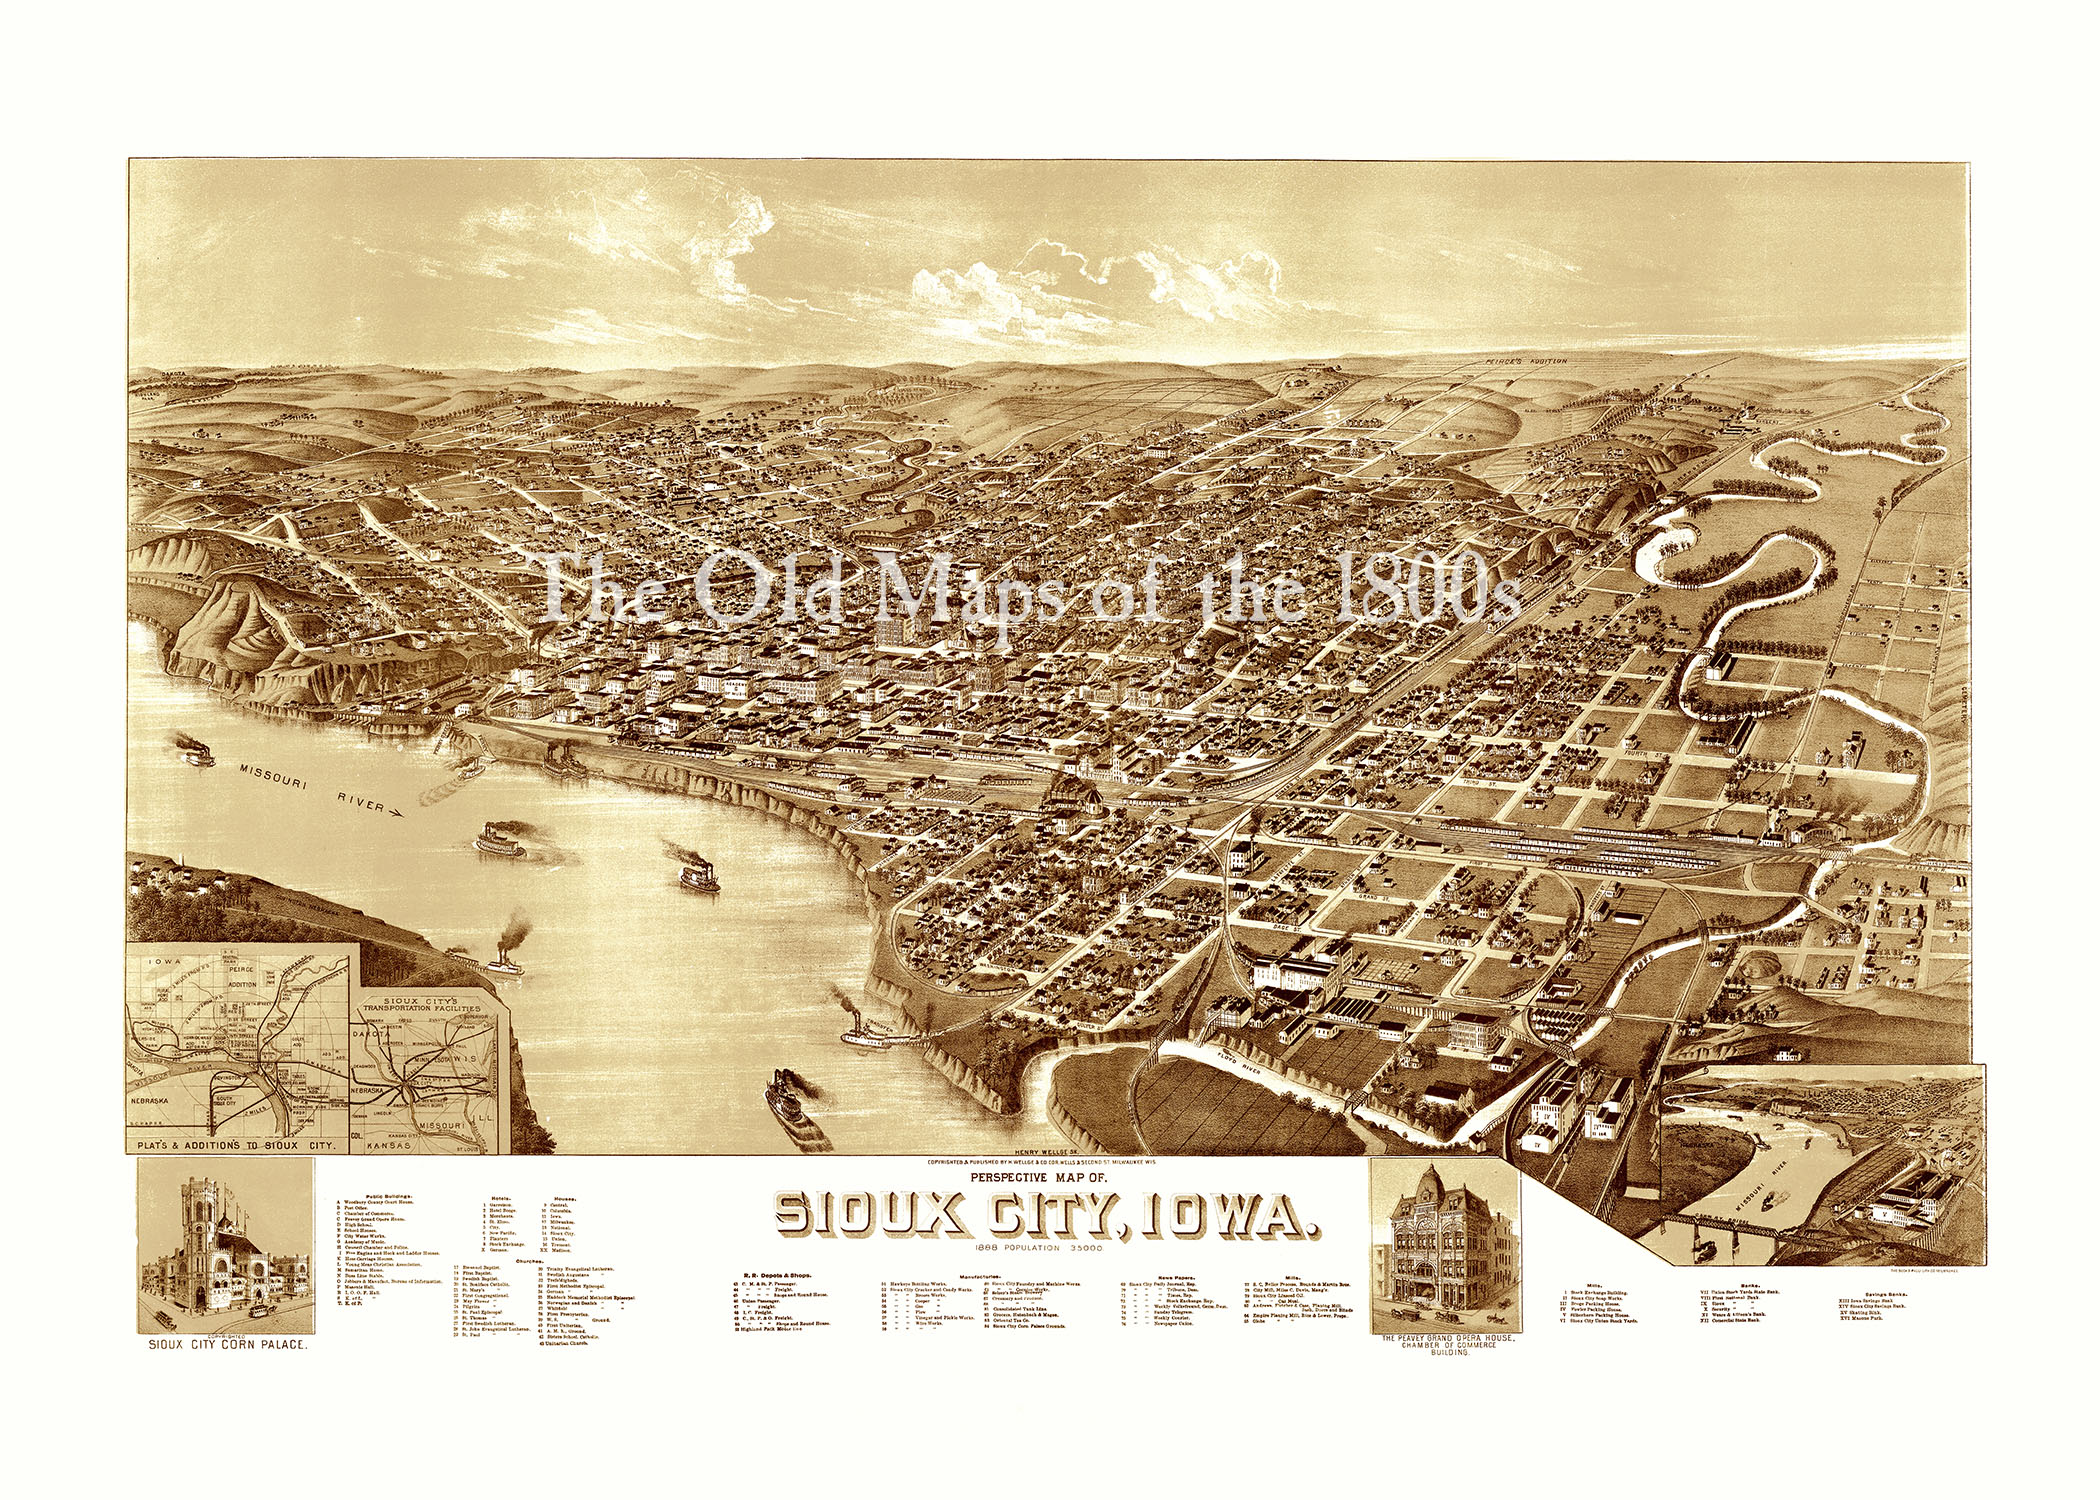 Sioux city iowa in 1888 bird 39 s eye view aerial map for Craft stores in sioux city iowa